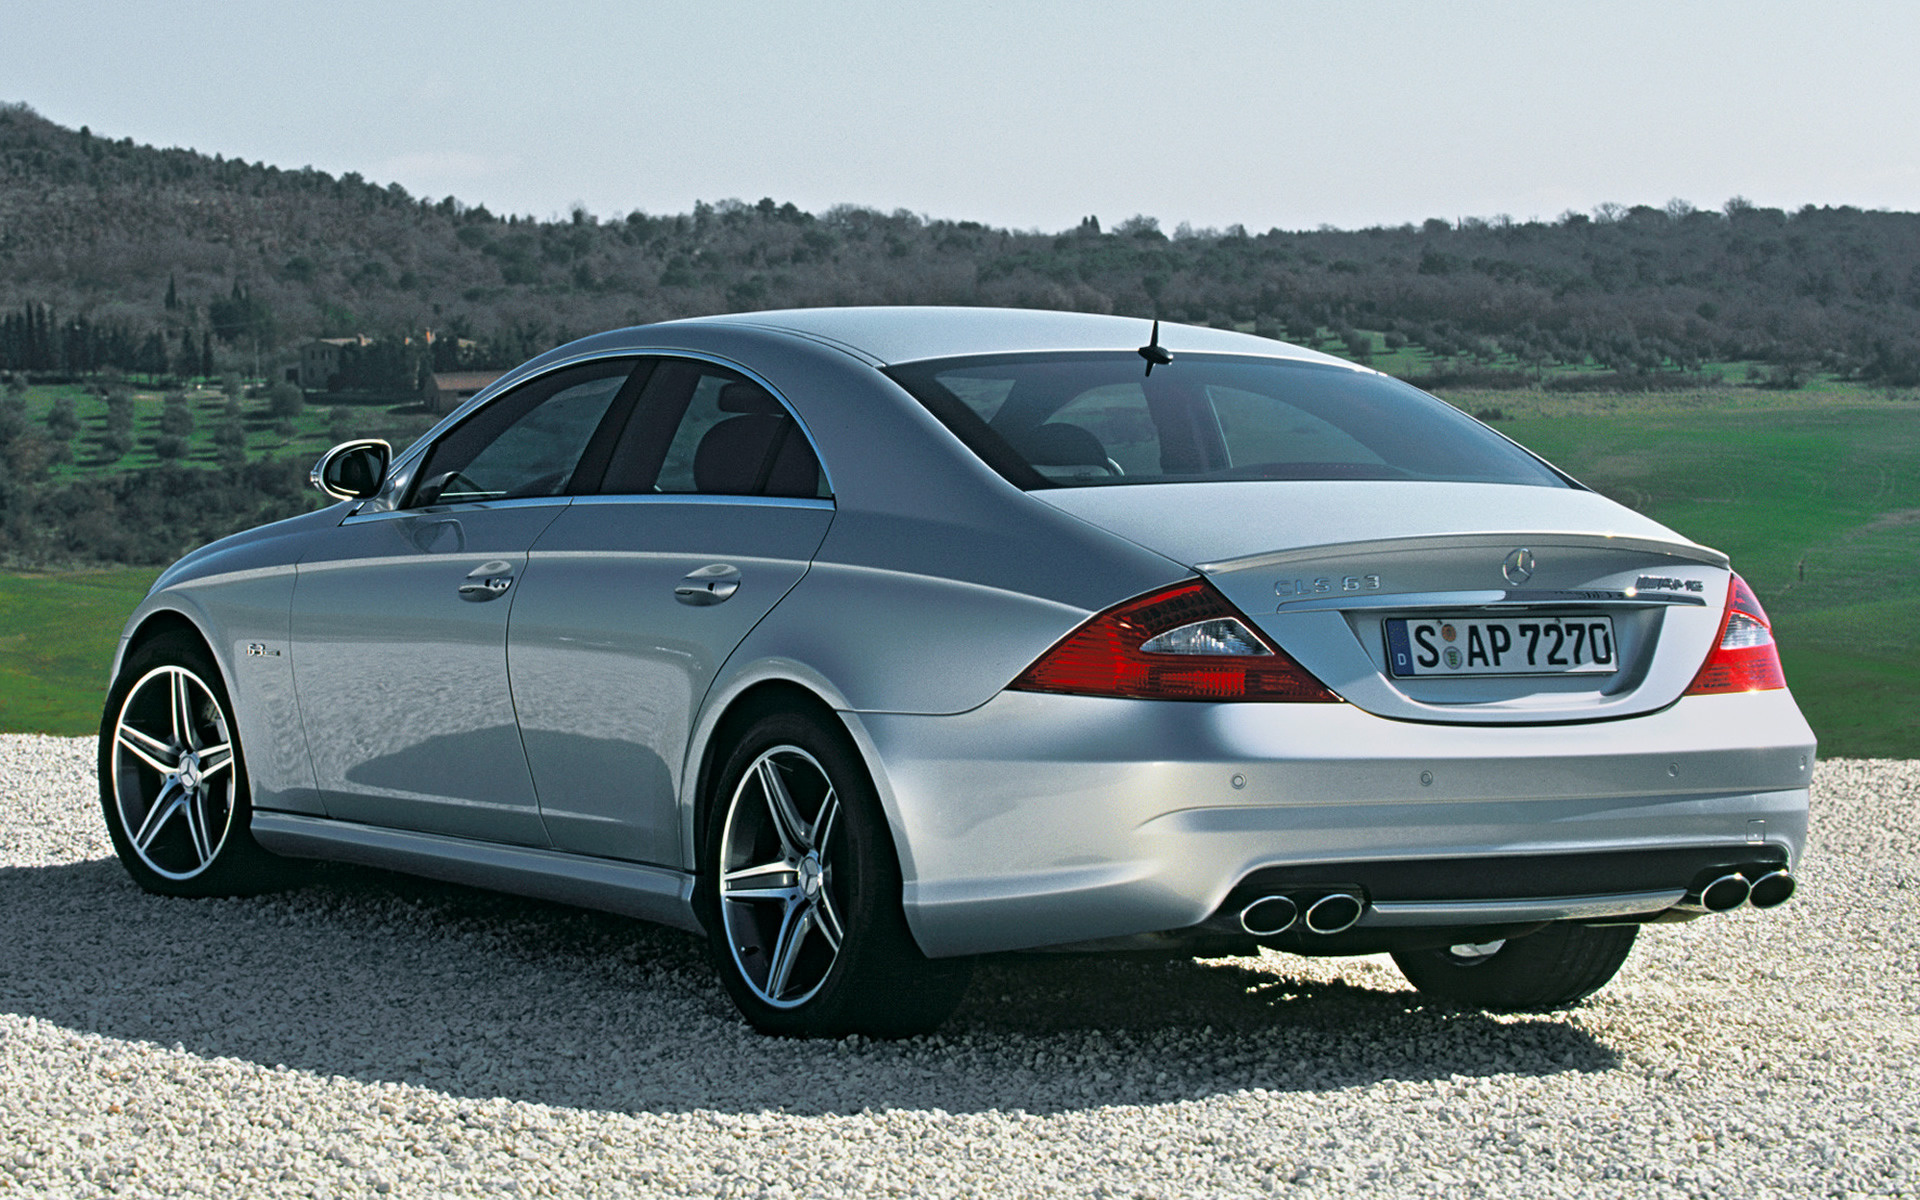 2006 Mercedes Benz Cls 500 >> Mercedes-Benz CLS 63 AMG (2006) Wallpapers and HD Images - Car Pixel